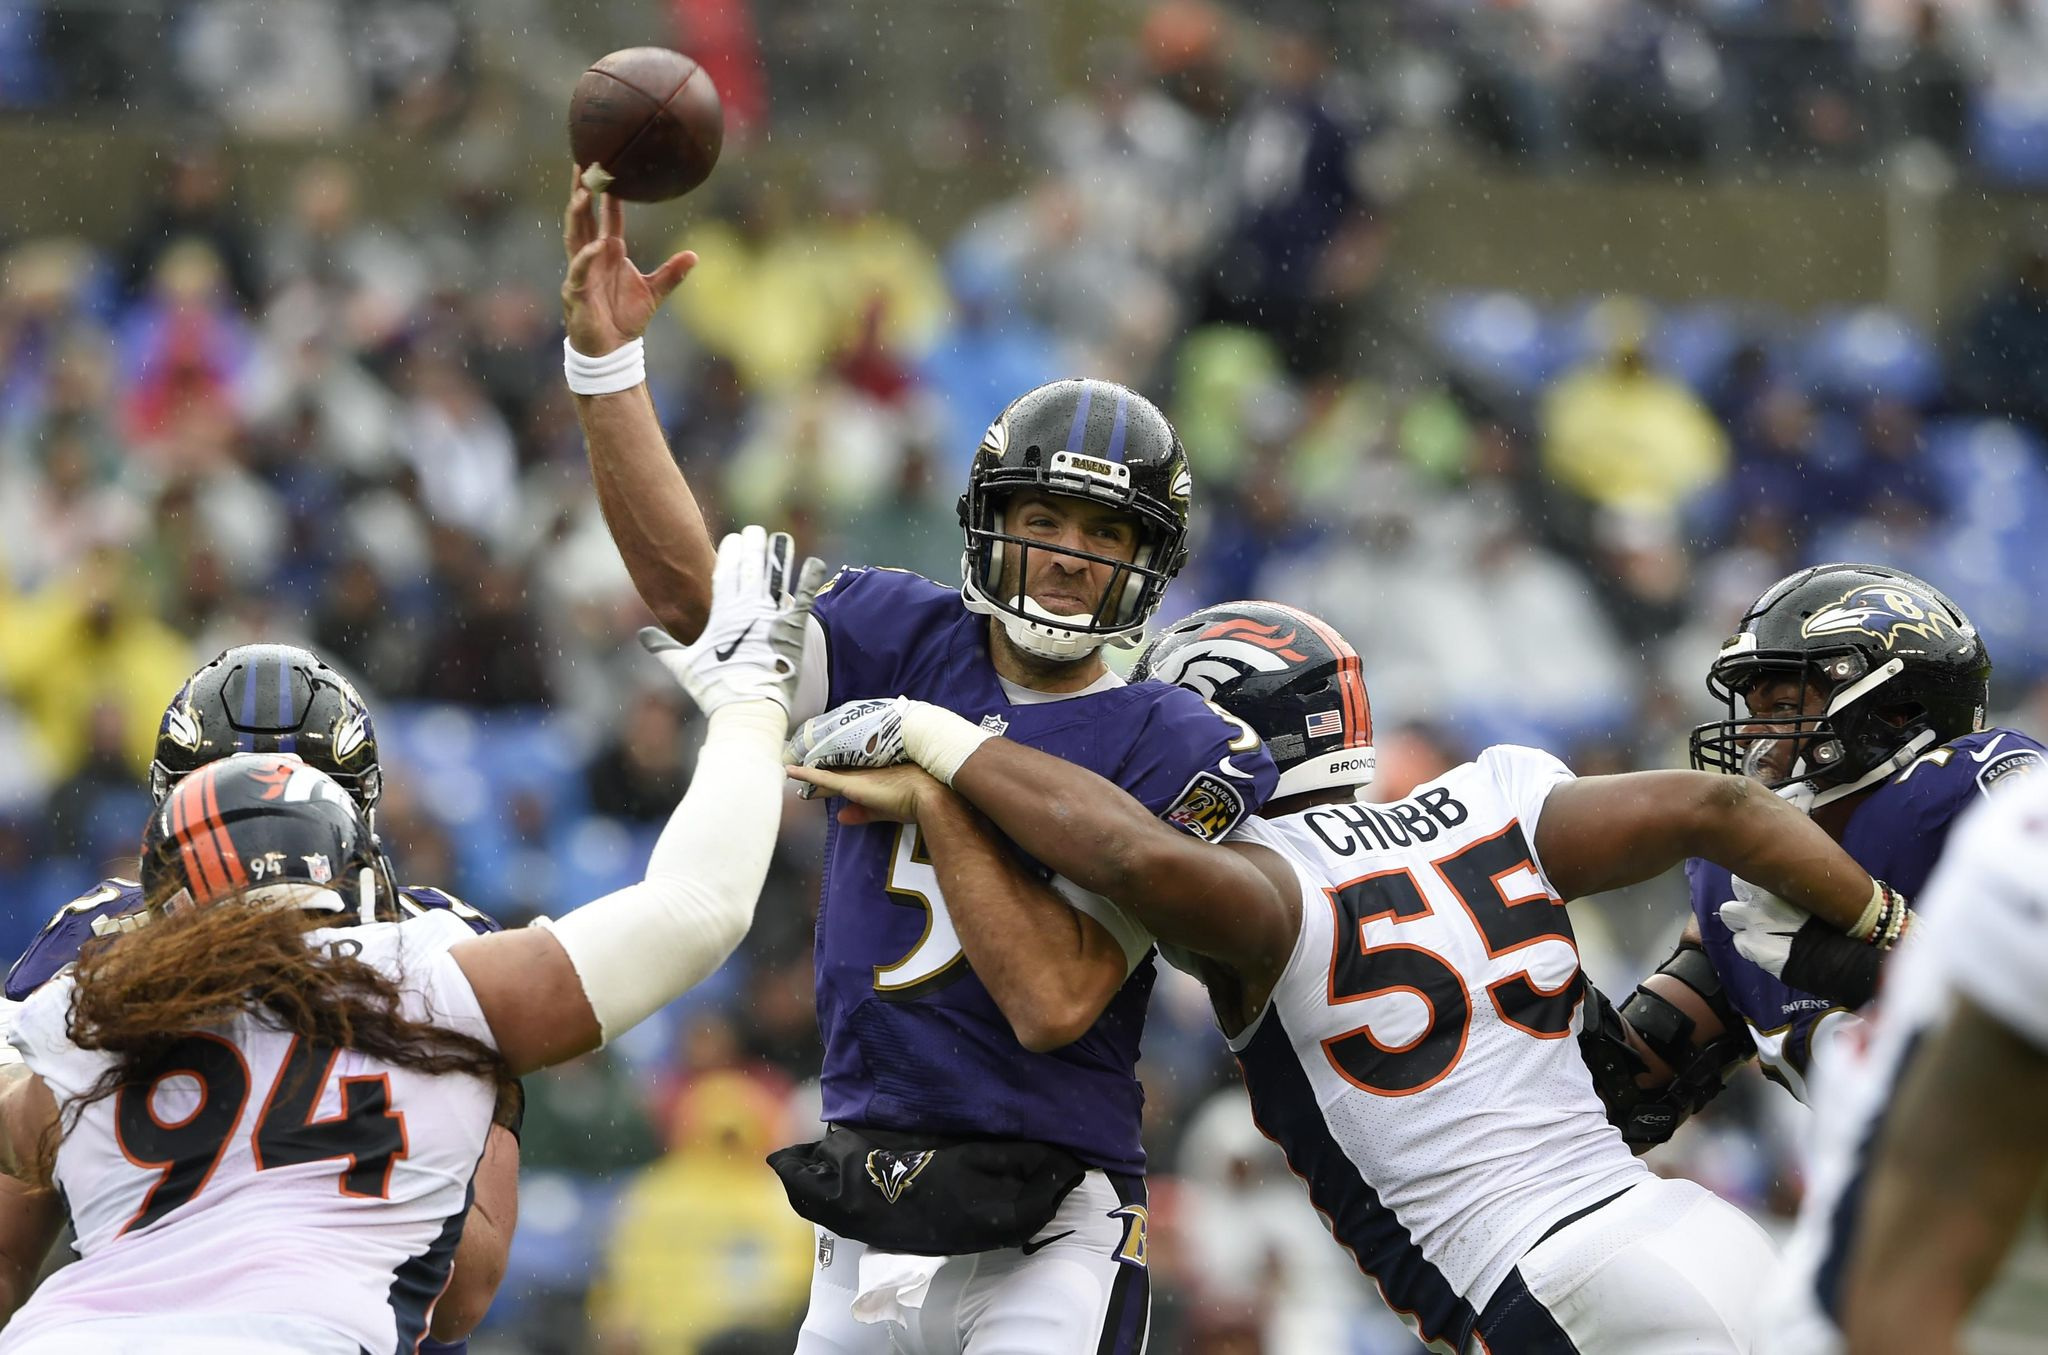 Ravens perfection in red zone ends Broncos' perfect record - Washington Times